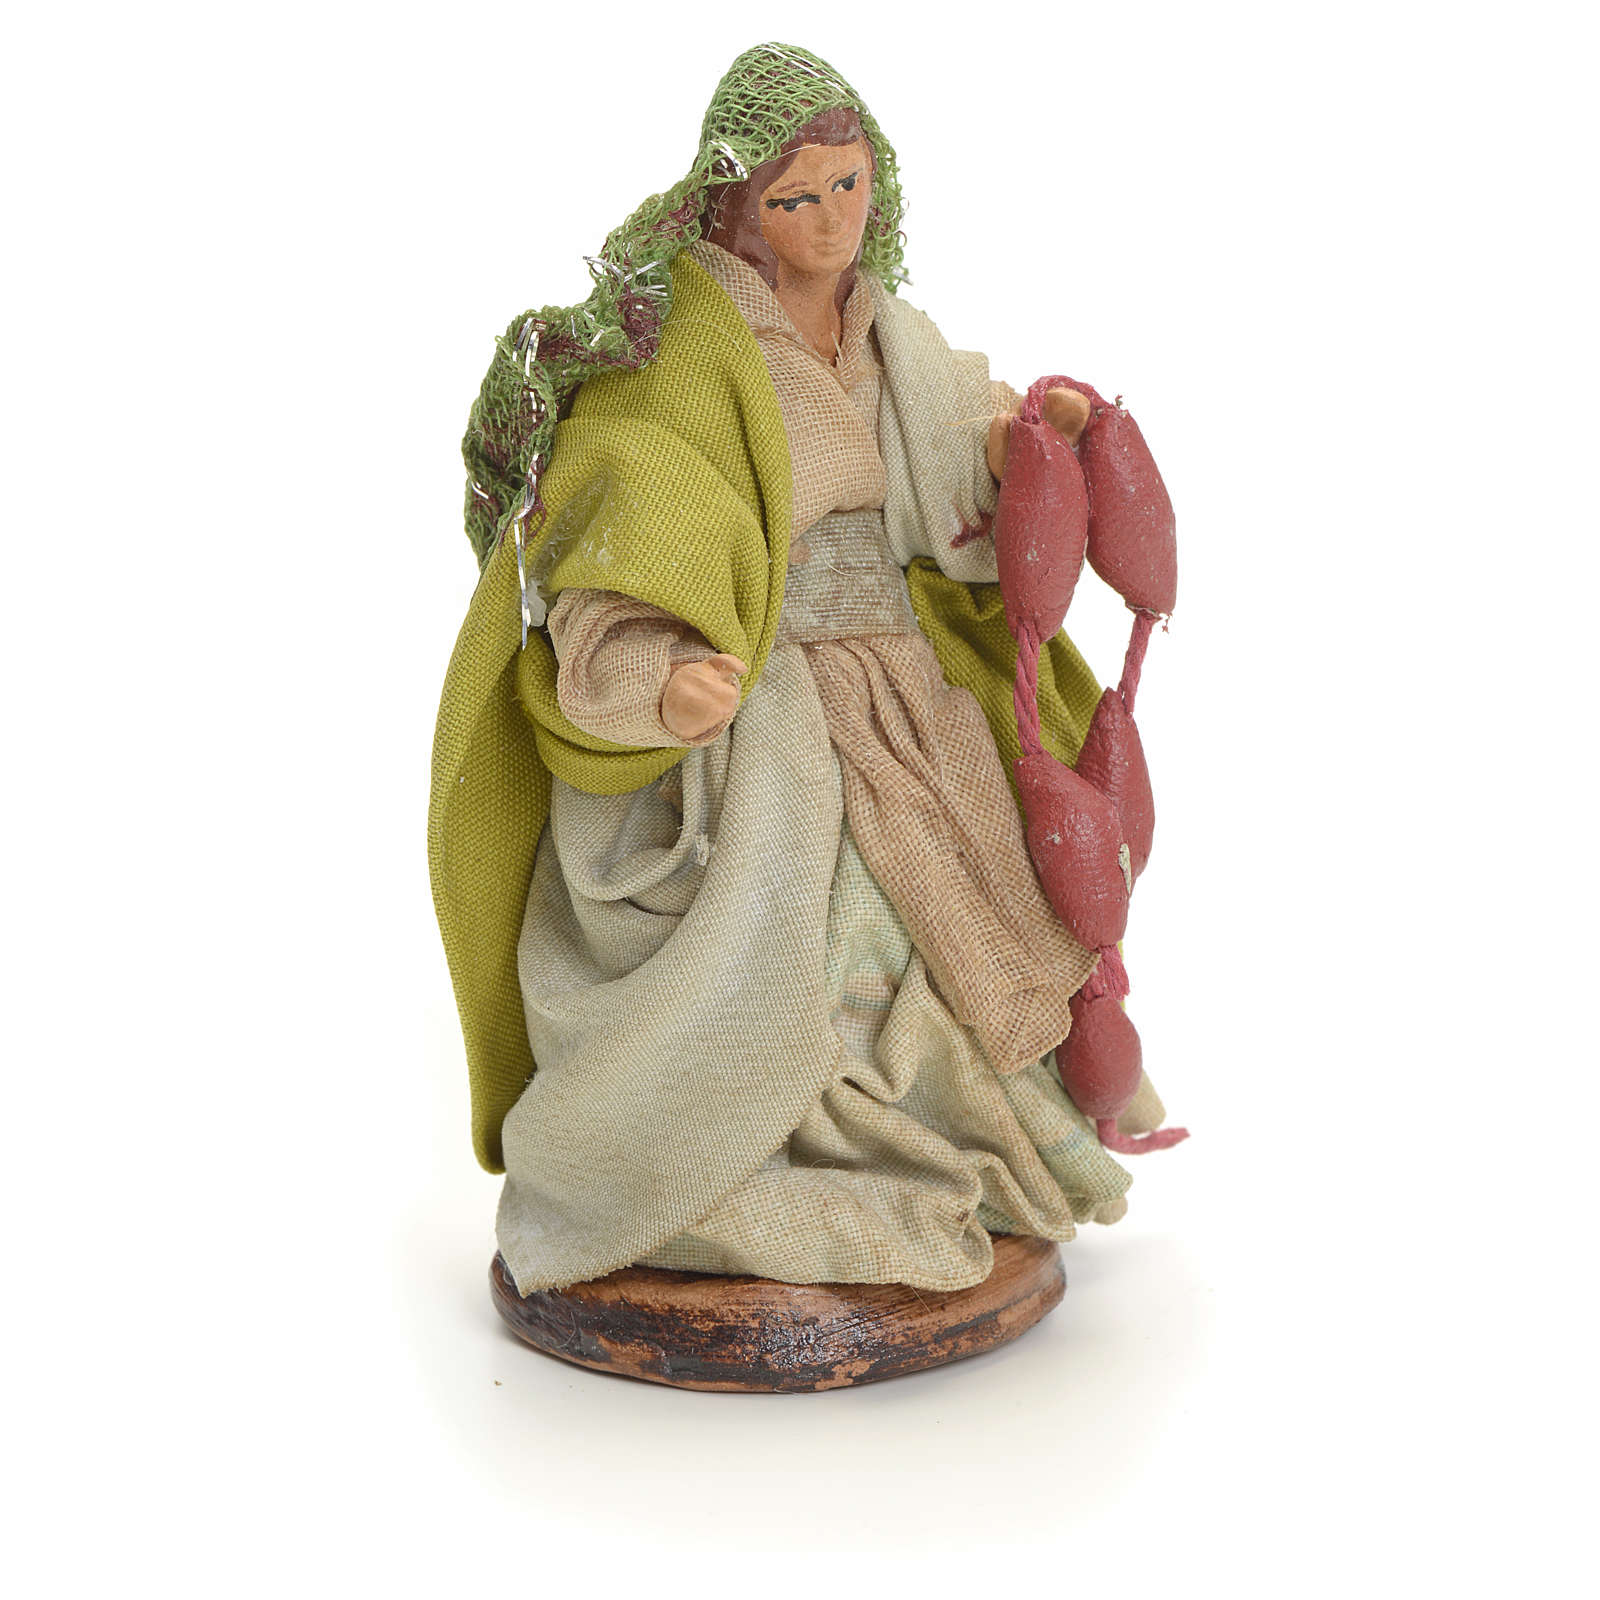 Neapolitan Nativity figurine, woman with cured meat, 8 cm 4